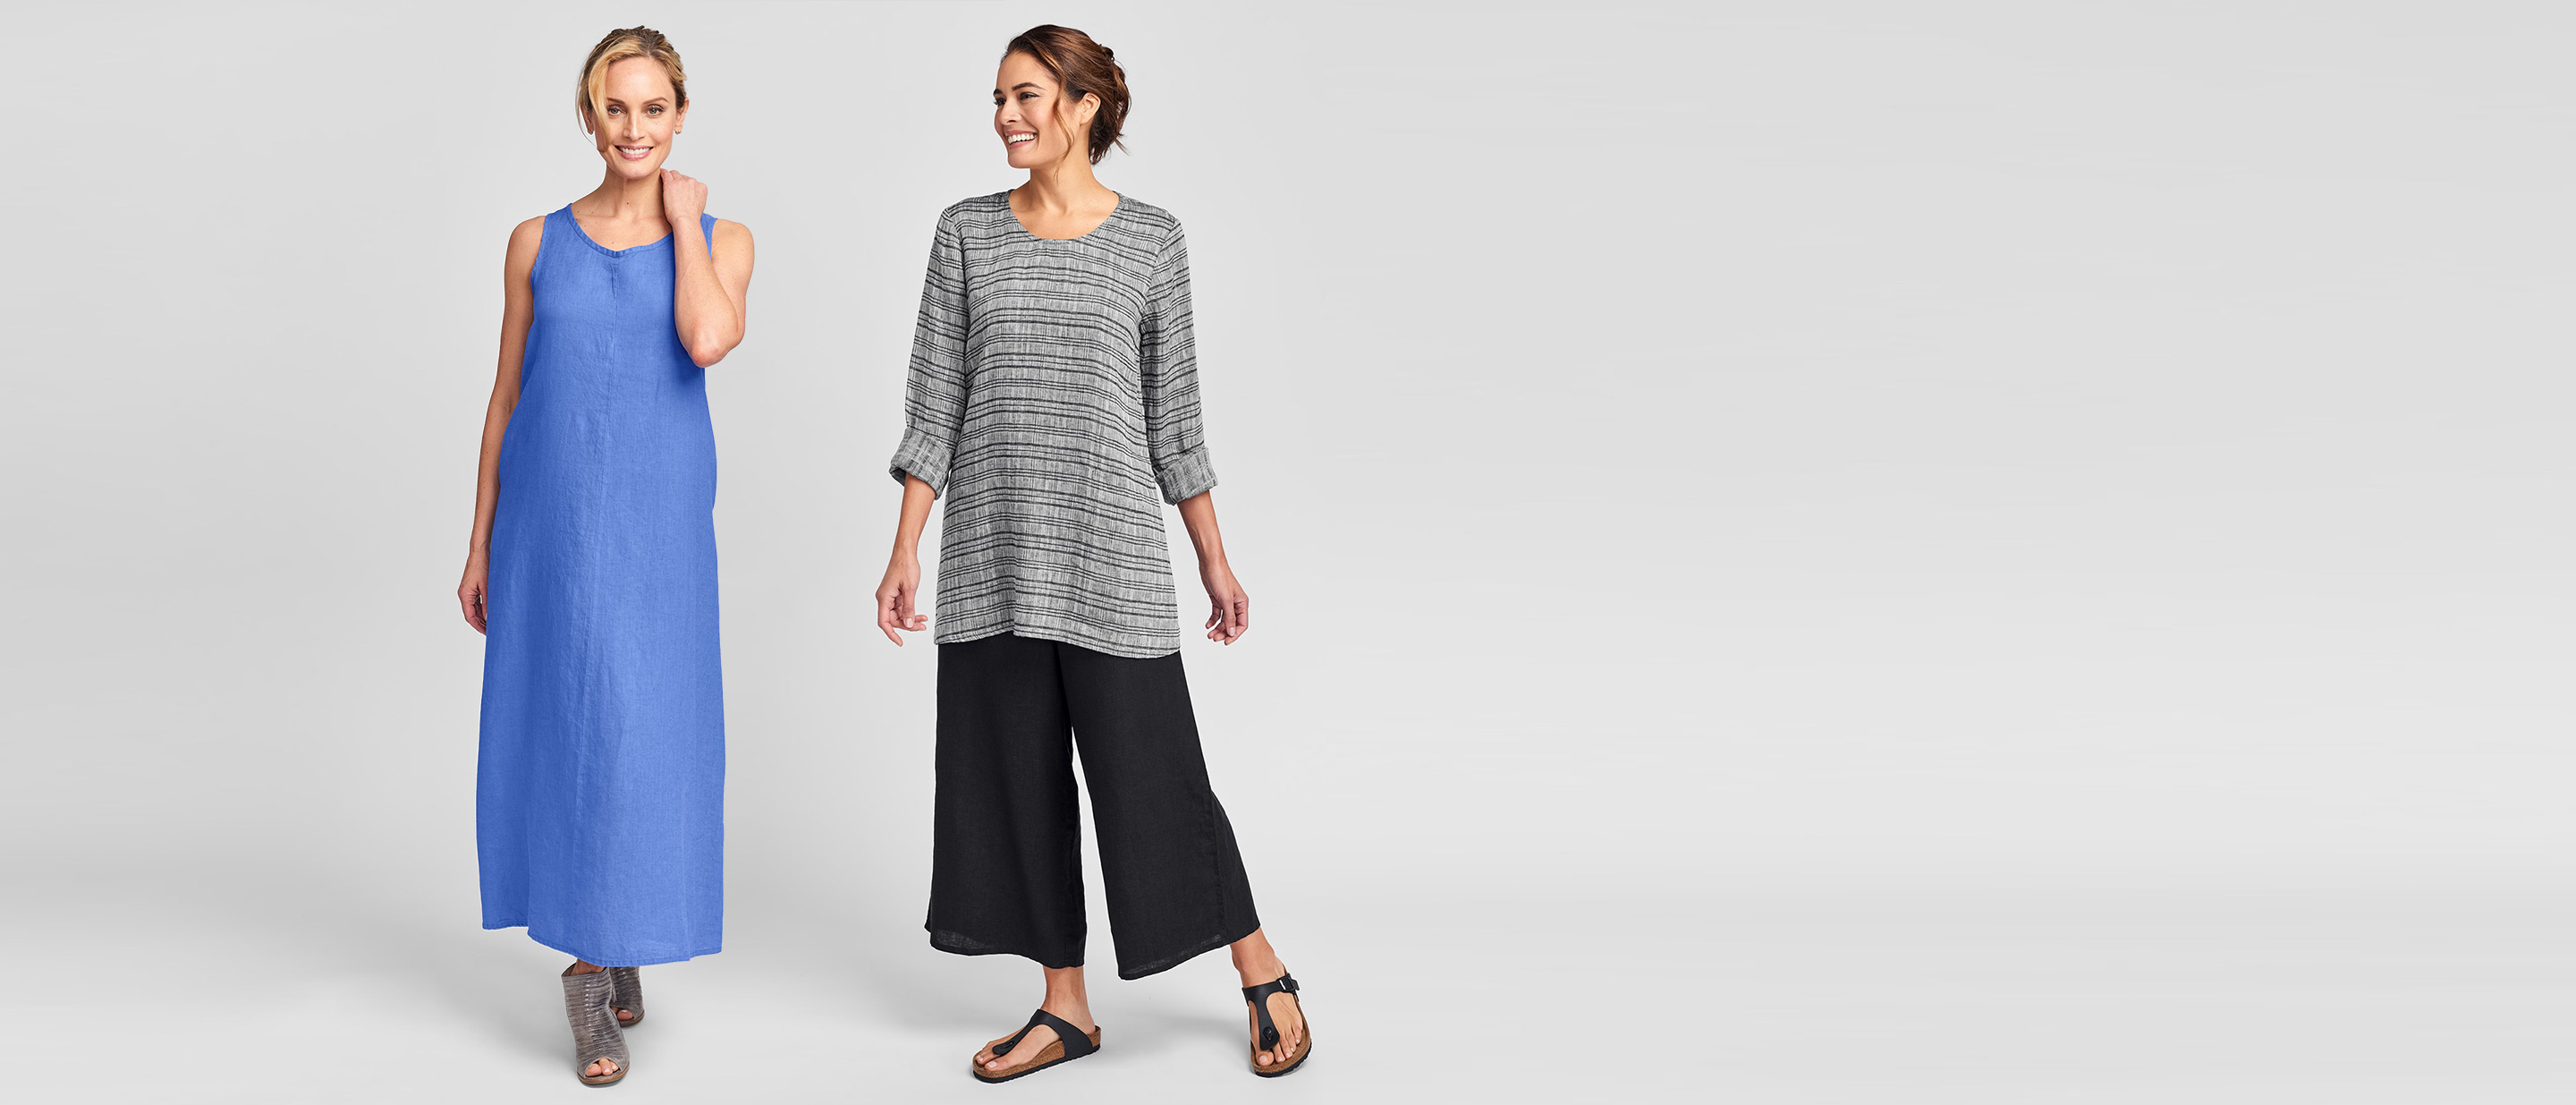 flax women's linen clothing for summer 2021